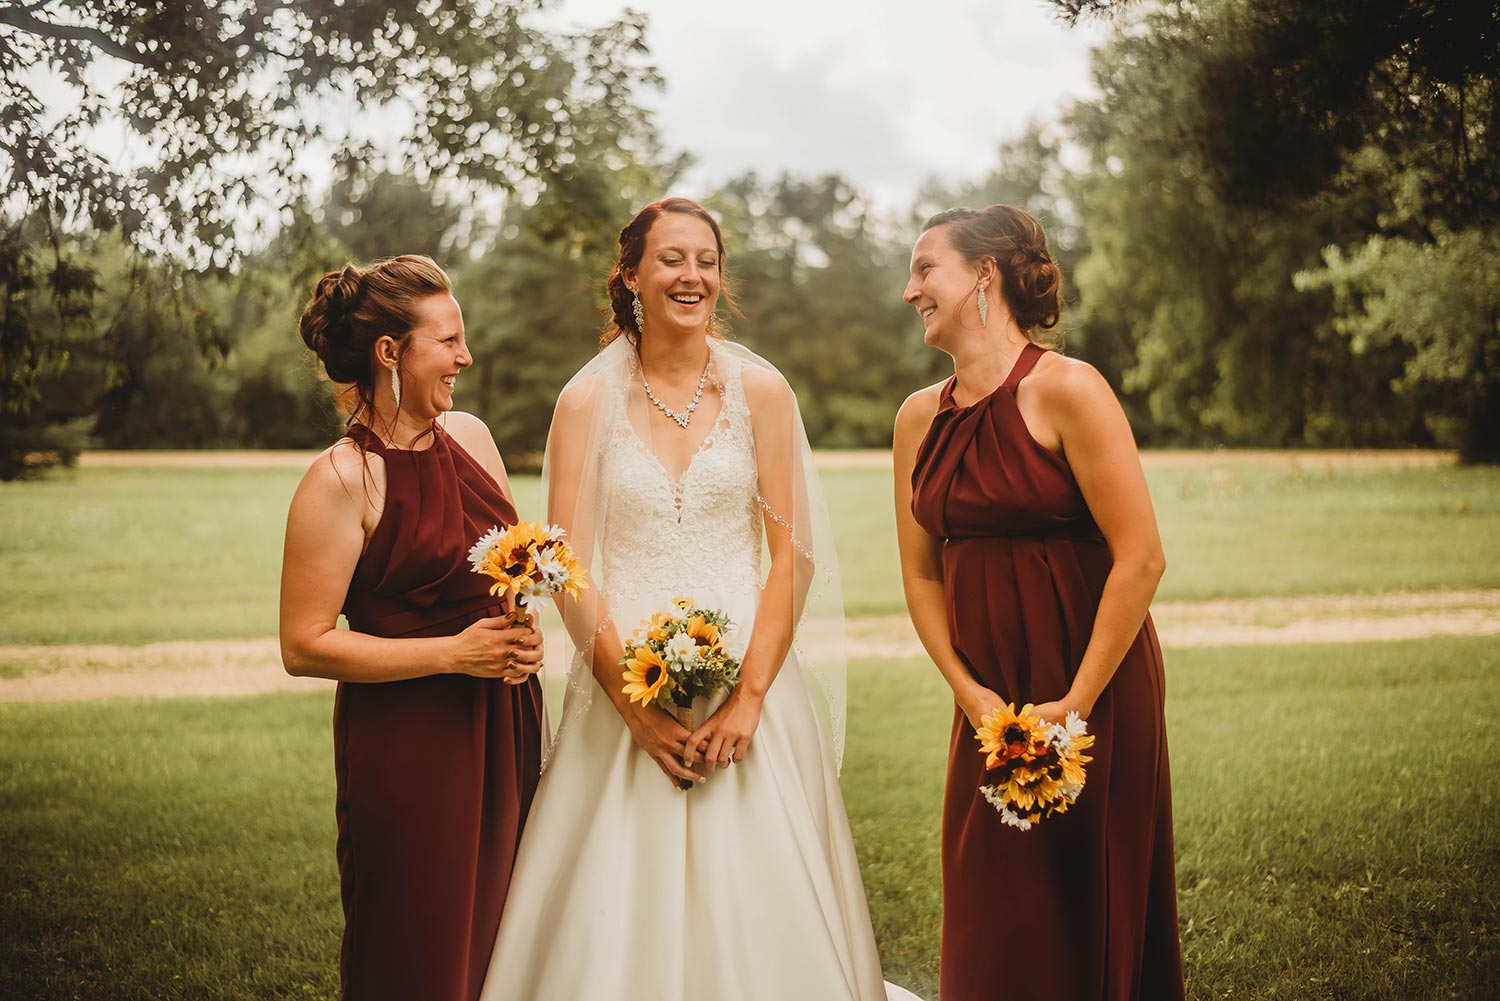 Bridesmaids in Deep Red With Sunflower Bouquets